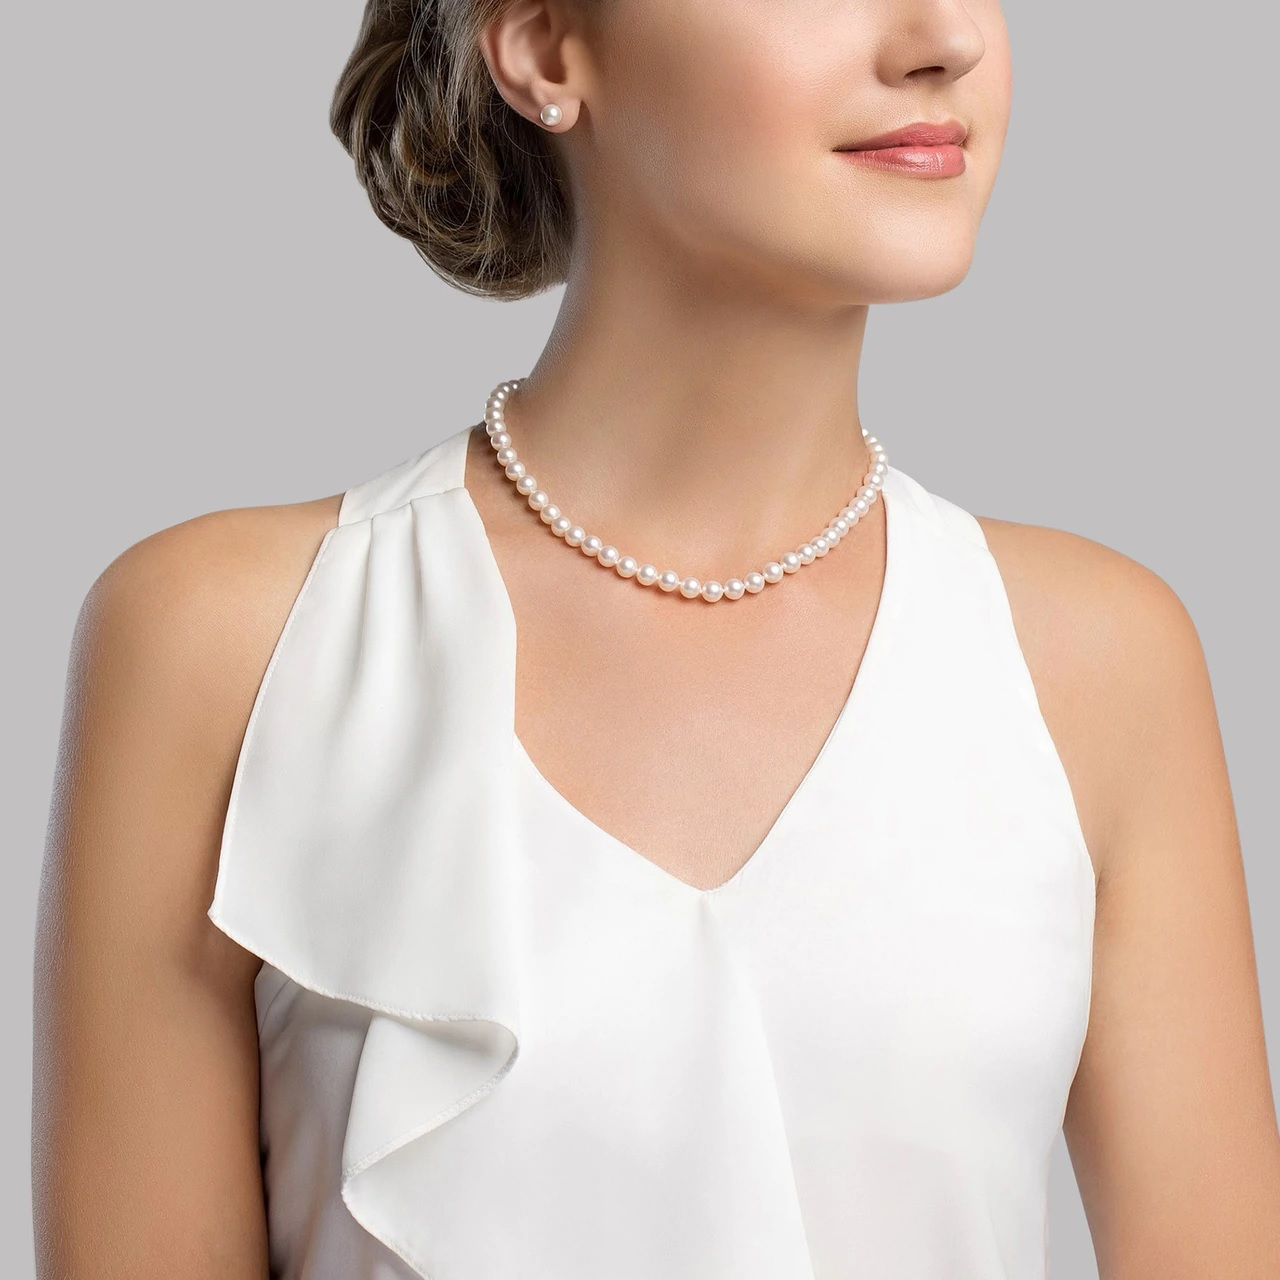 This classic necklace and earring set features 7.0-7.5mm Japanese Akoya pearls